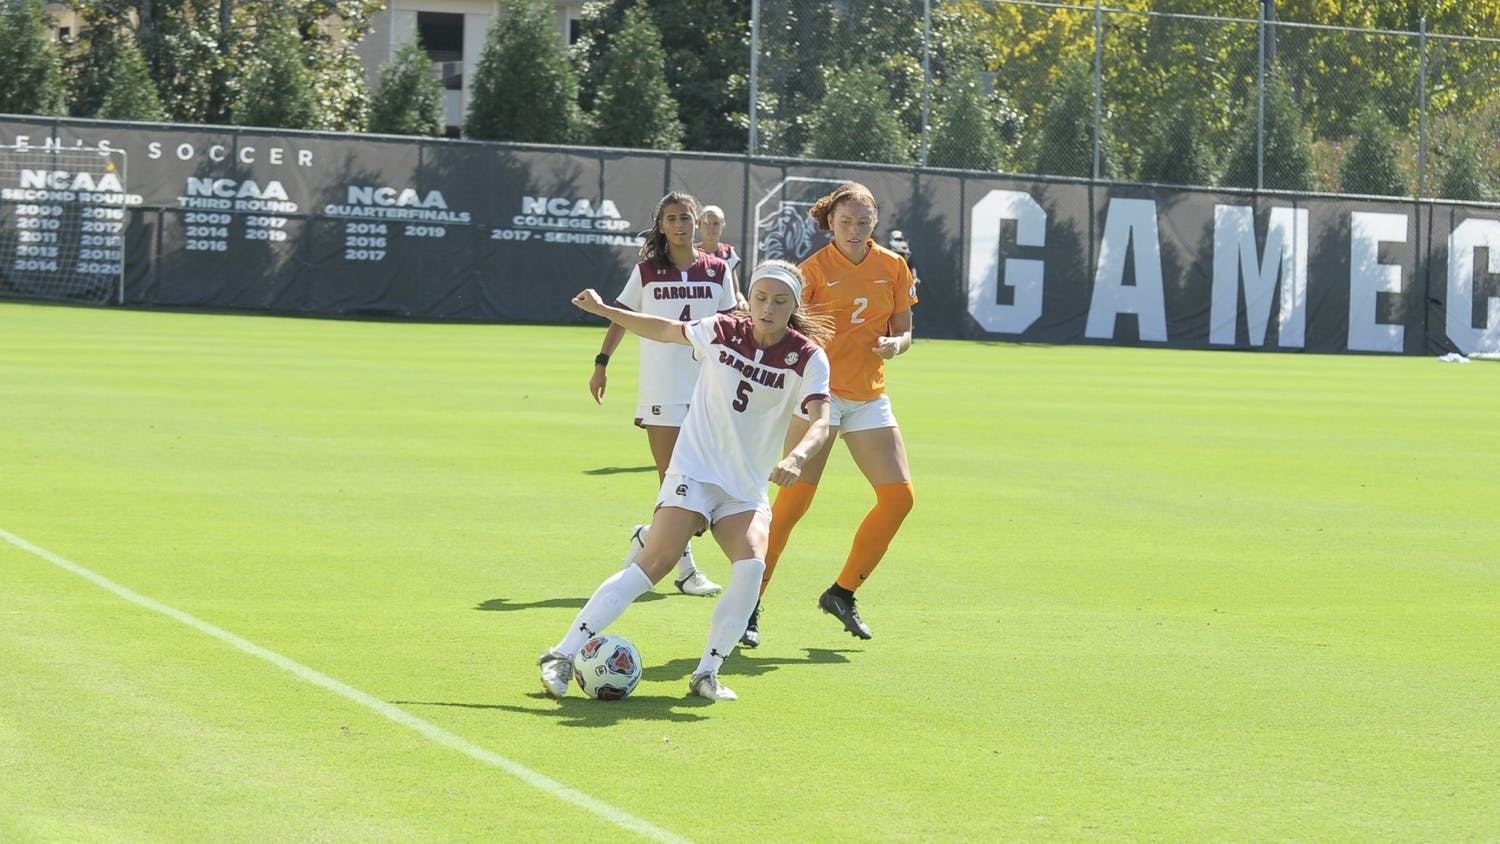 Gamecock graduate forward Luciana Zullo keeps the ball in bounds after receiving a pass from a teammate during the game against Tennessee Oct. 10, 2021.